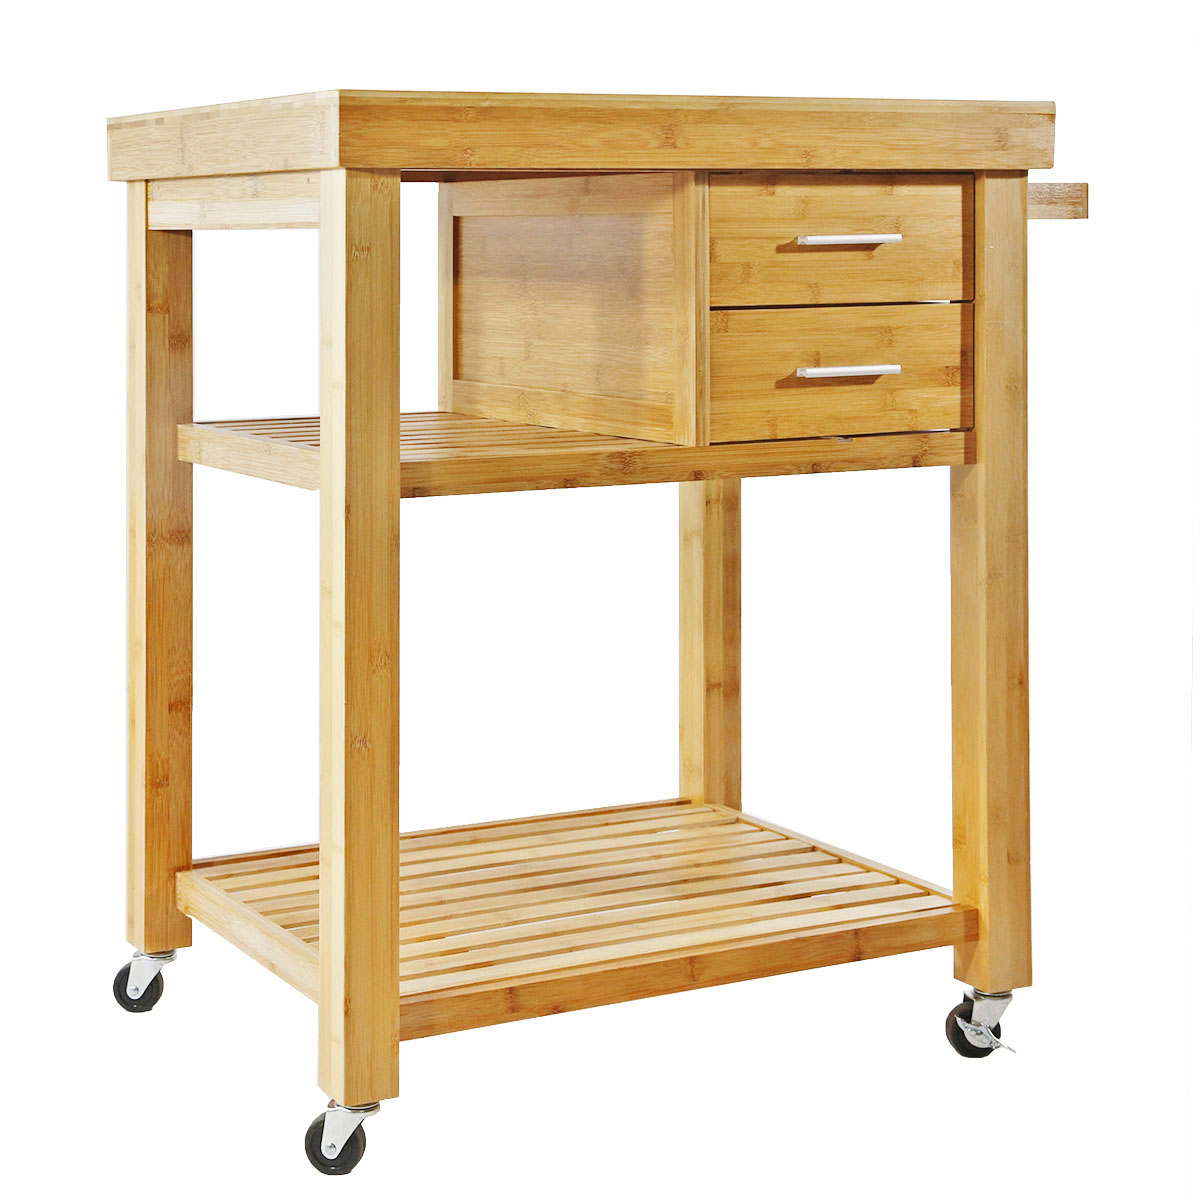 bamboo kitchen island rolling bamboo wood kitchen island cart trolley w towel rack drawer shelves 764475460126 ebay 1904